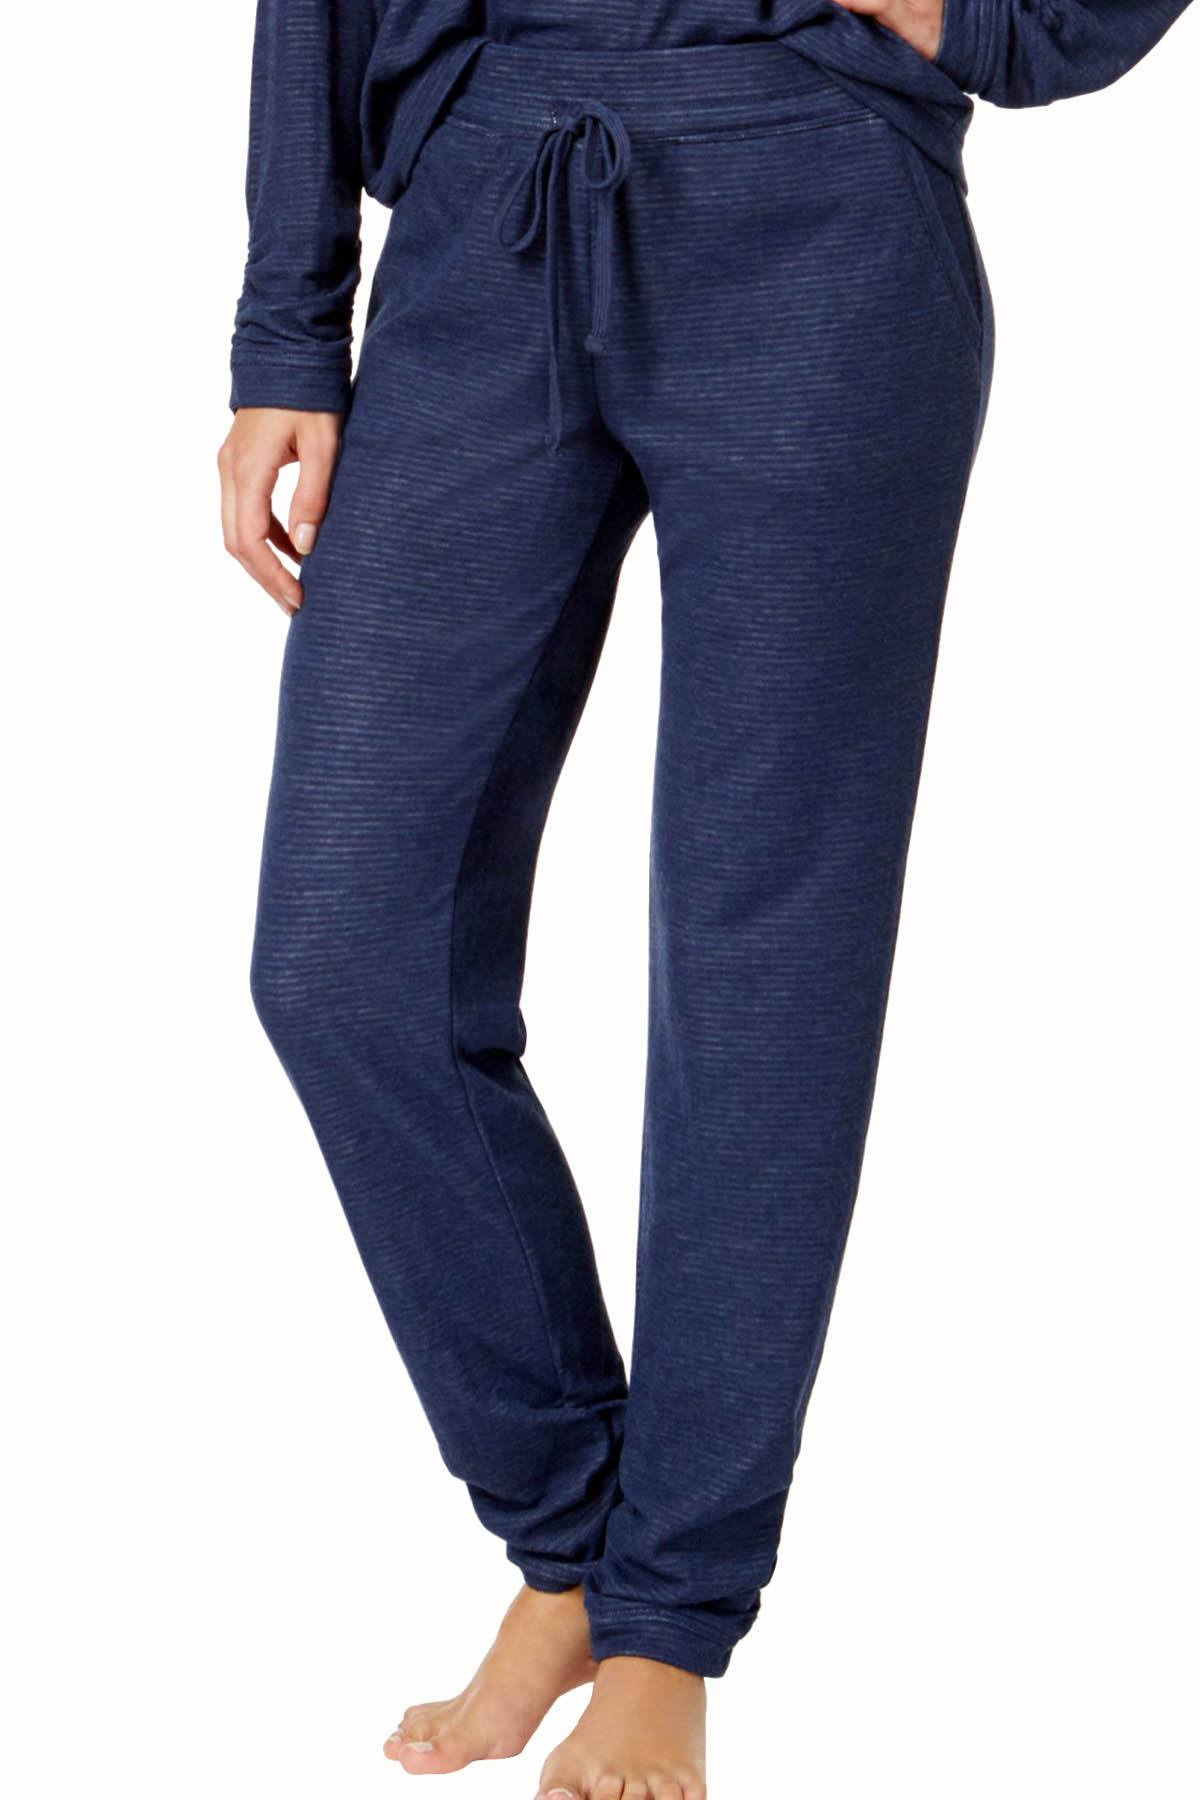 Alfani Intimates Navy Double-Knit Jogger PJ Pant